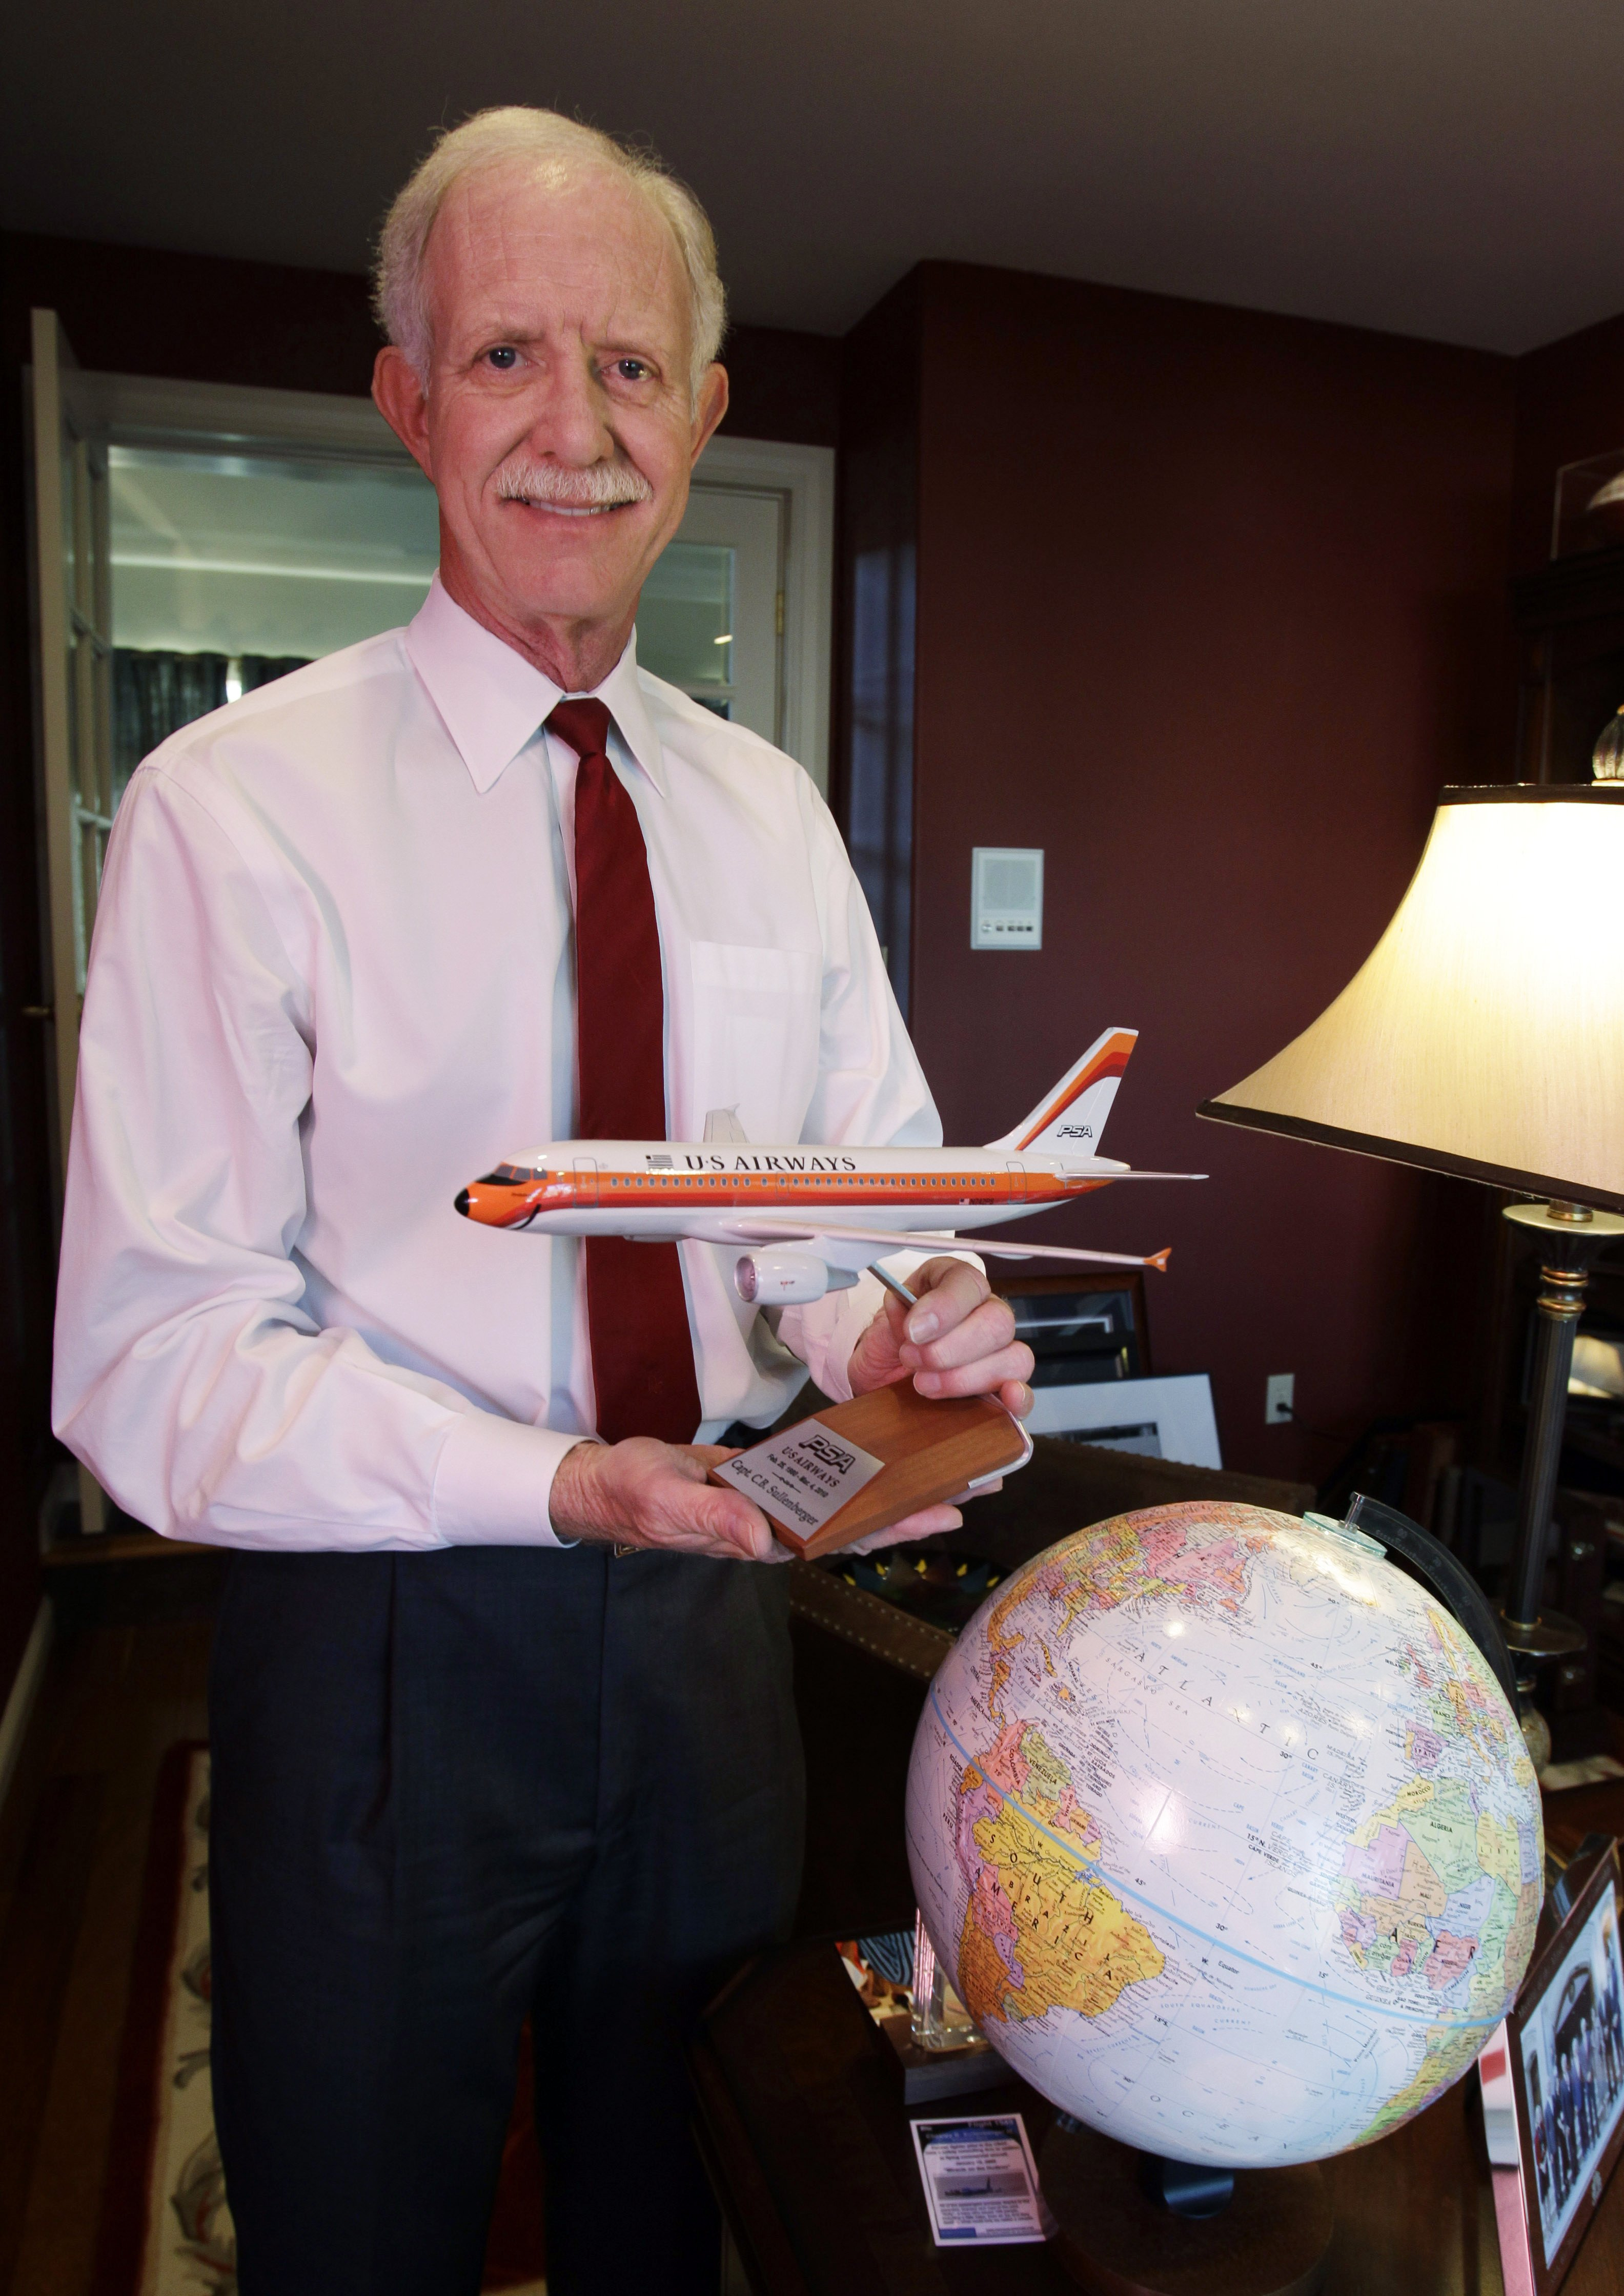 Chesley  Sully  Sullenberger captain of the US Airways flight #5149 that landed in New York's Hudson River in 2009, poses in his office at his home in Danville, Calif on Jan. 10. 2011.